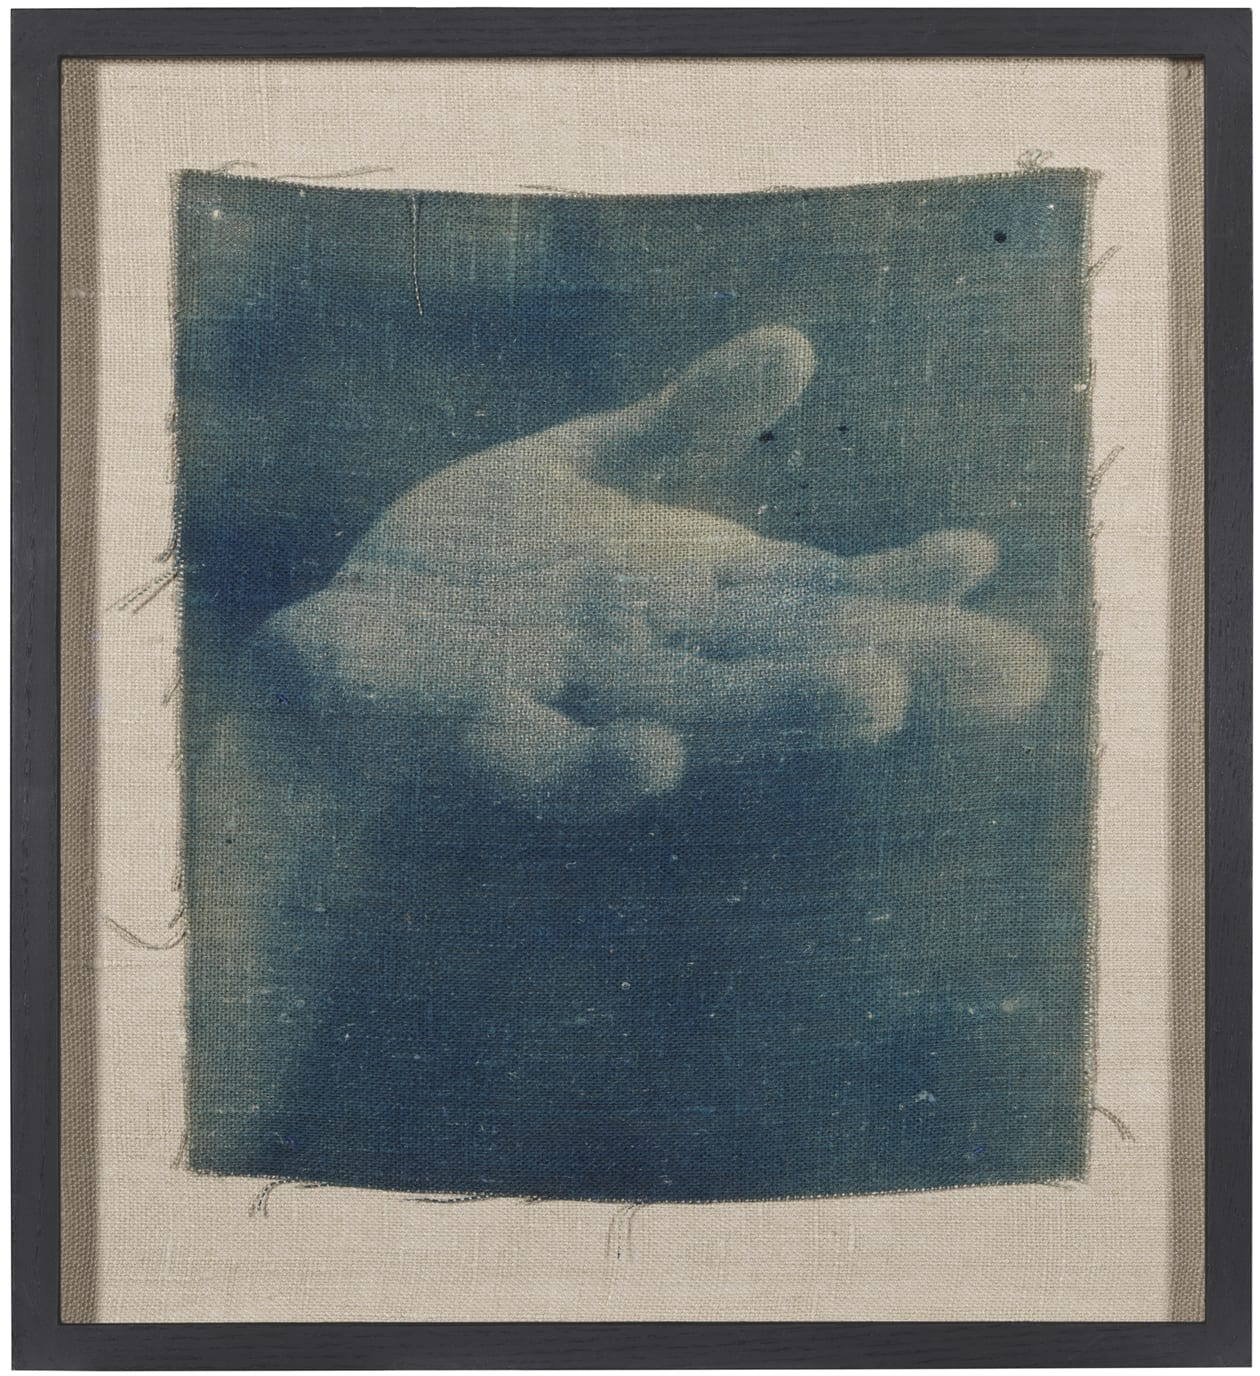 "<span class=""link fancybox-details-link""><a href=""/content/feature/154/artworks246/"">View Detail Page</a></span><div class=""medium"">Cyanotype on linen<br /> Framed<br /> Unique</div> <div class=""dimensions"">30.8 x 27.8 cm<br /> 12 1/8 x 11 in</div> <div class=""edition_details"">Unique</div>"